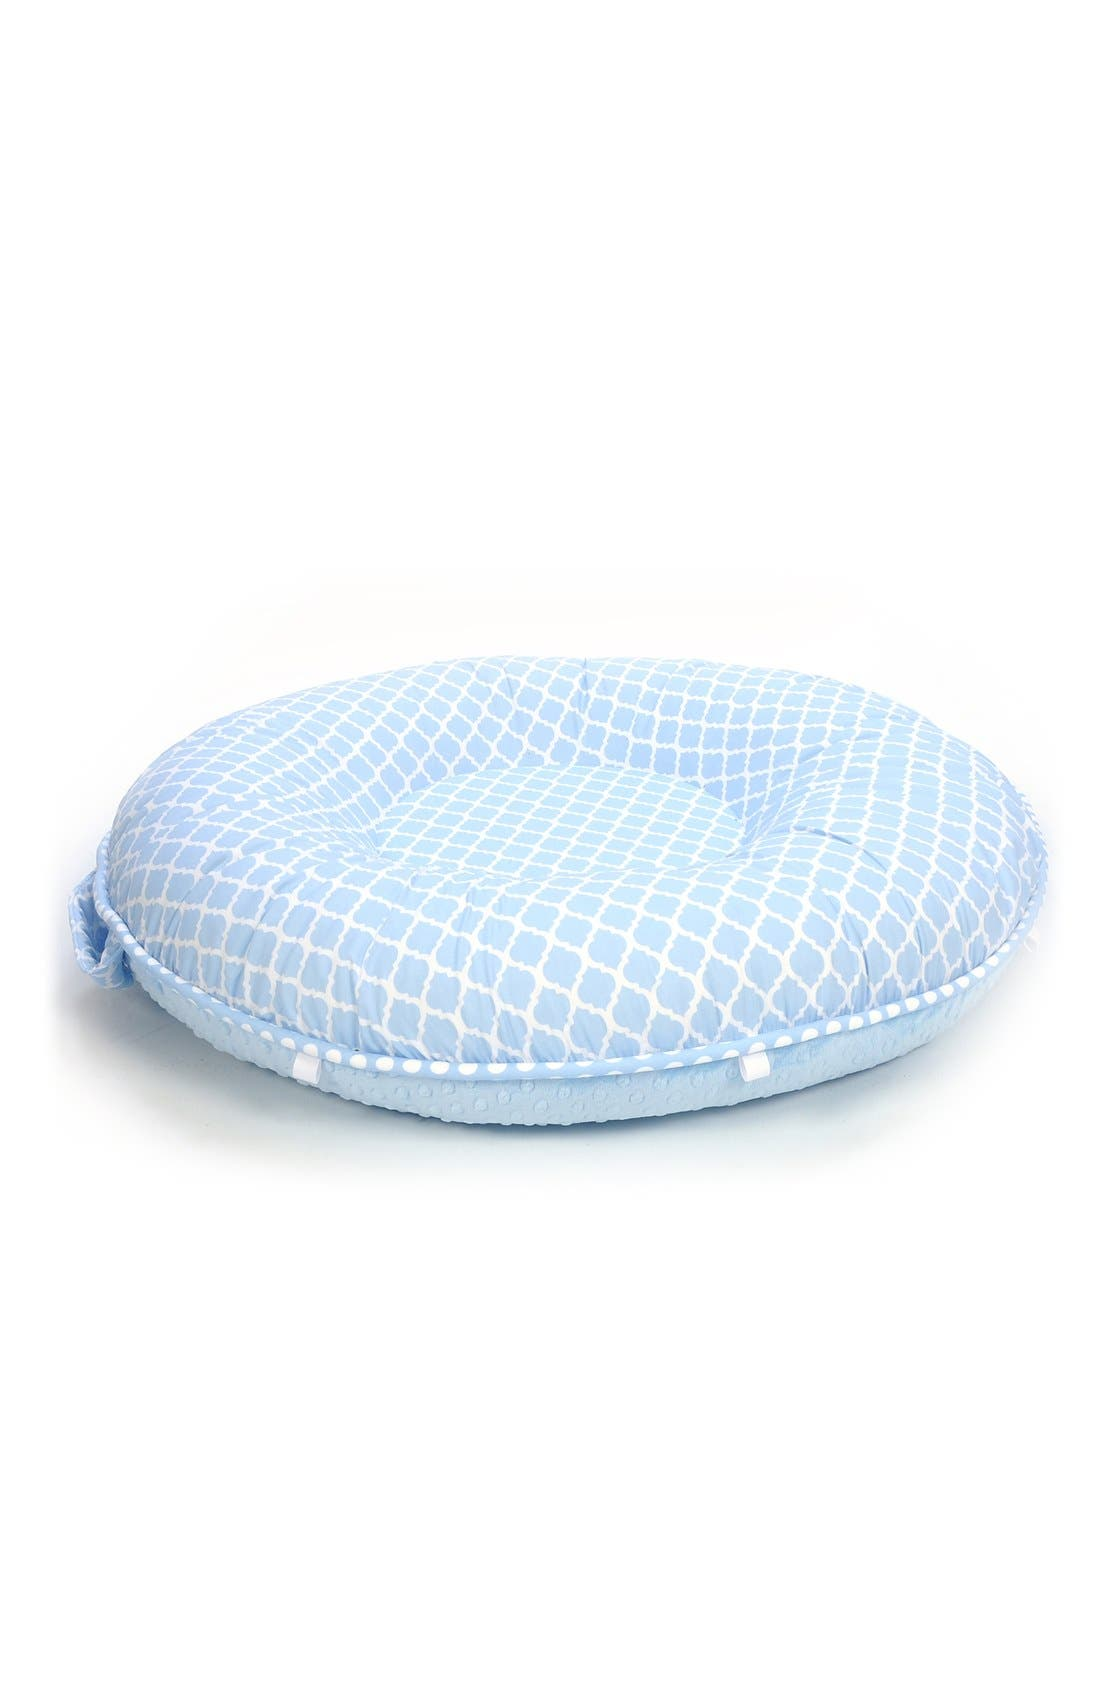 'Jack' Portable Floor Pillow,                         Main,                         color, 401